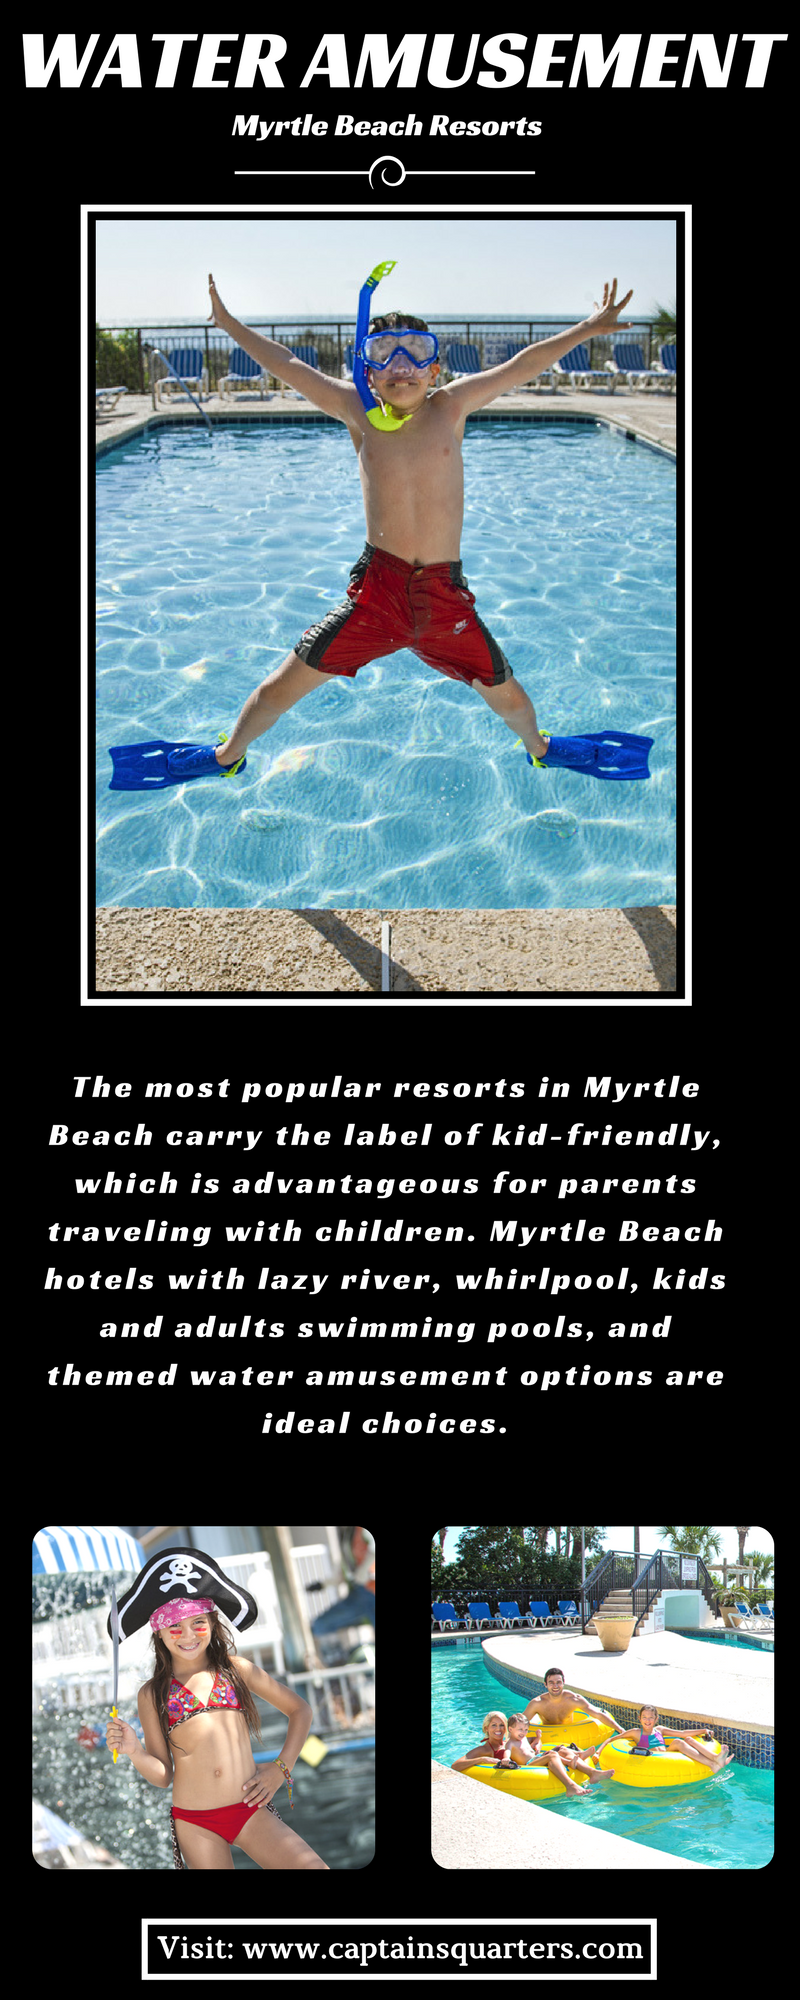 The most popular resorts in Myrtle Beach carry the label ...